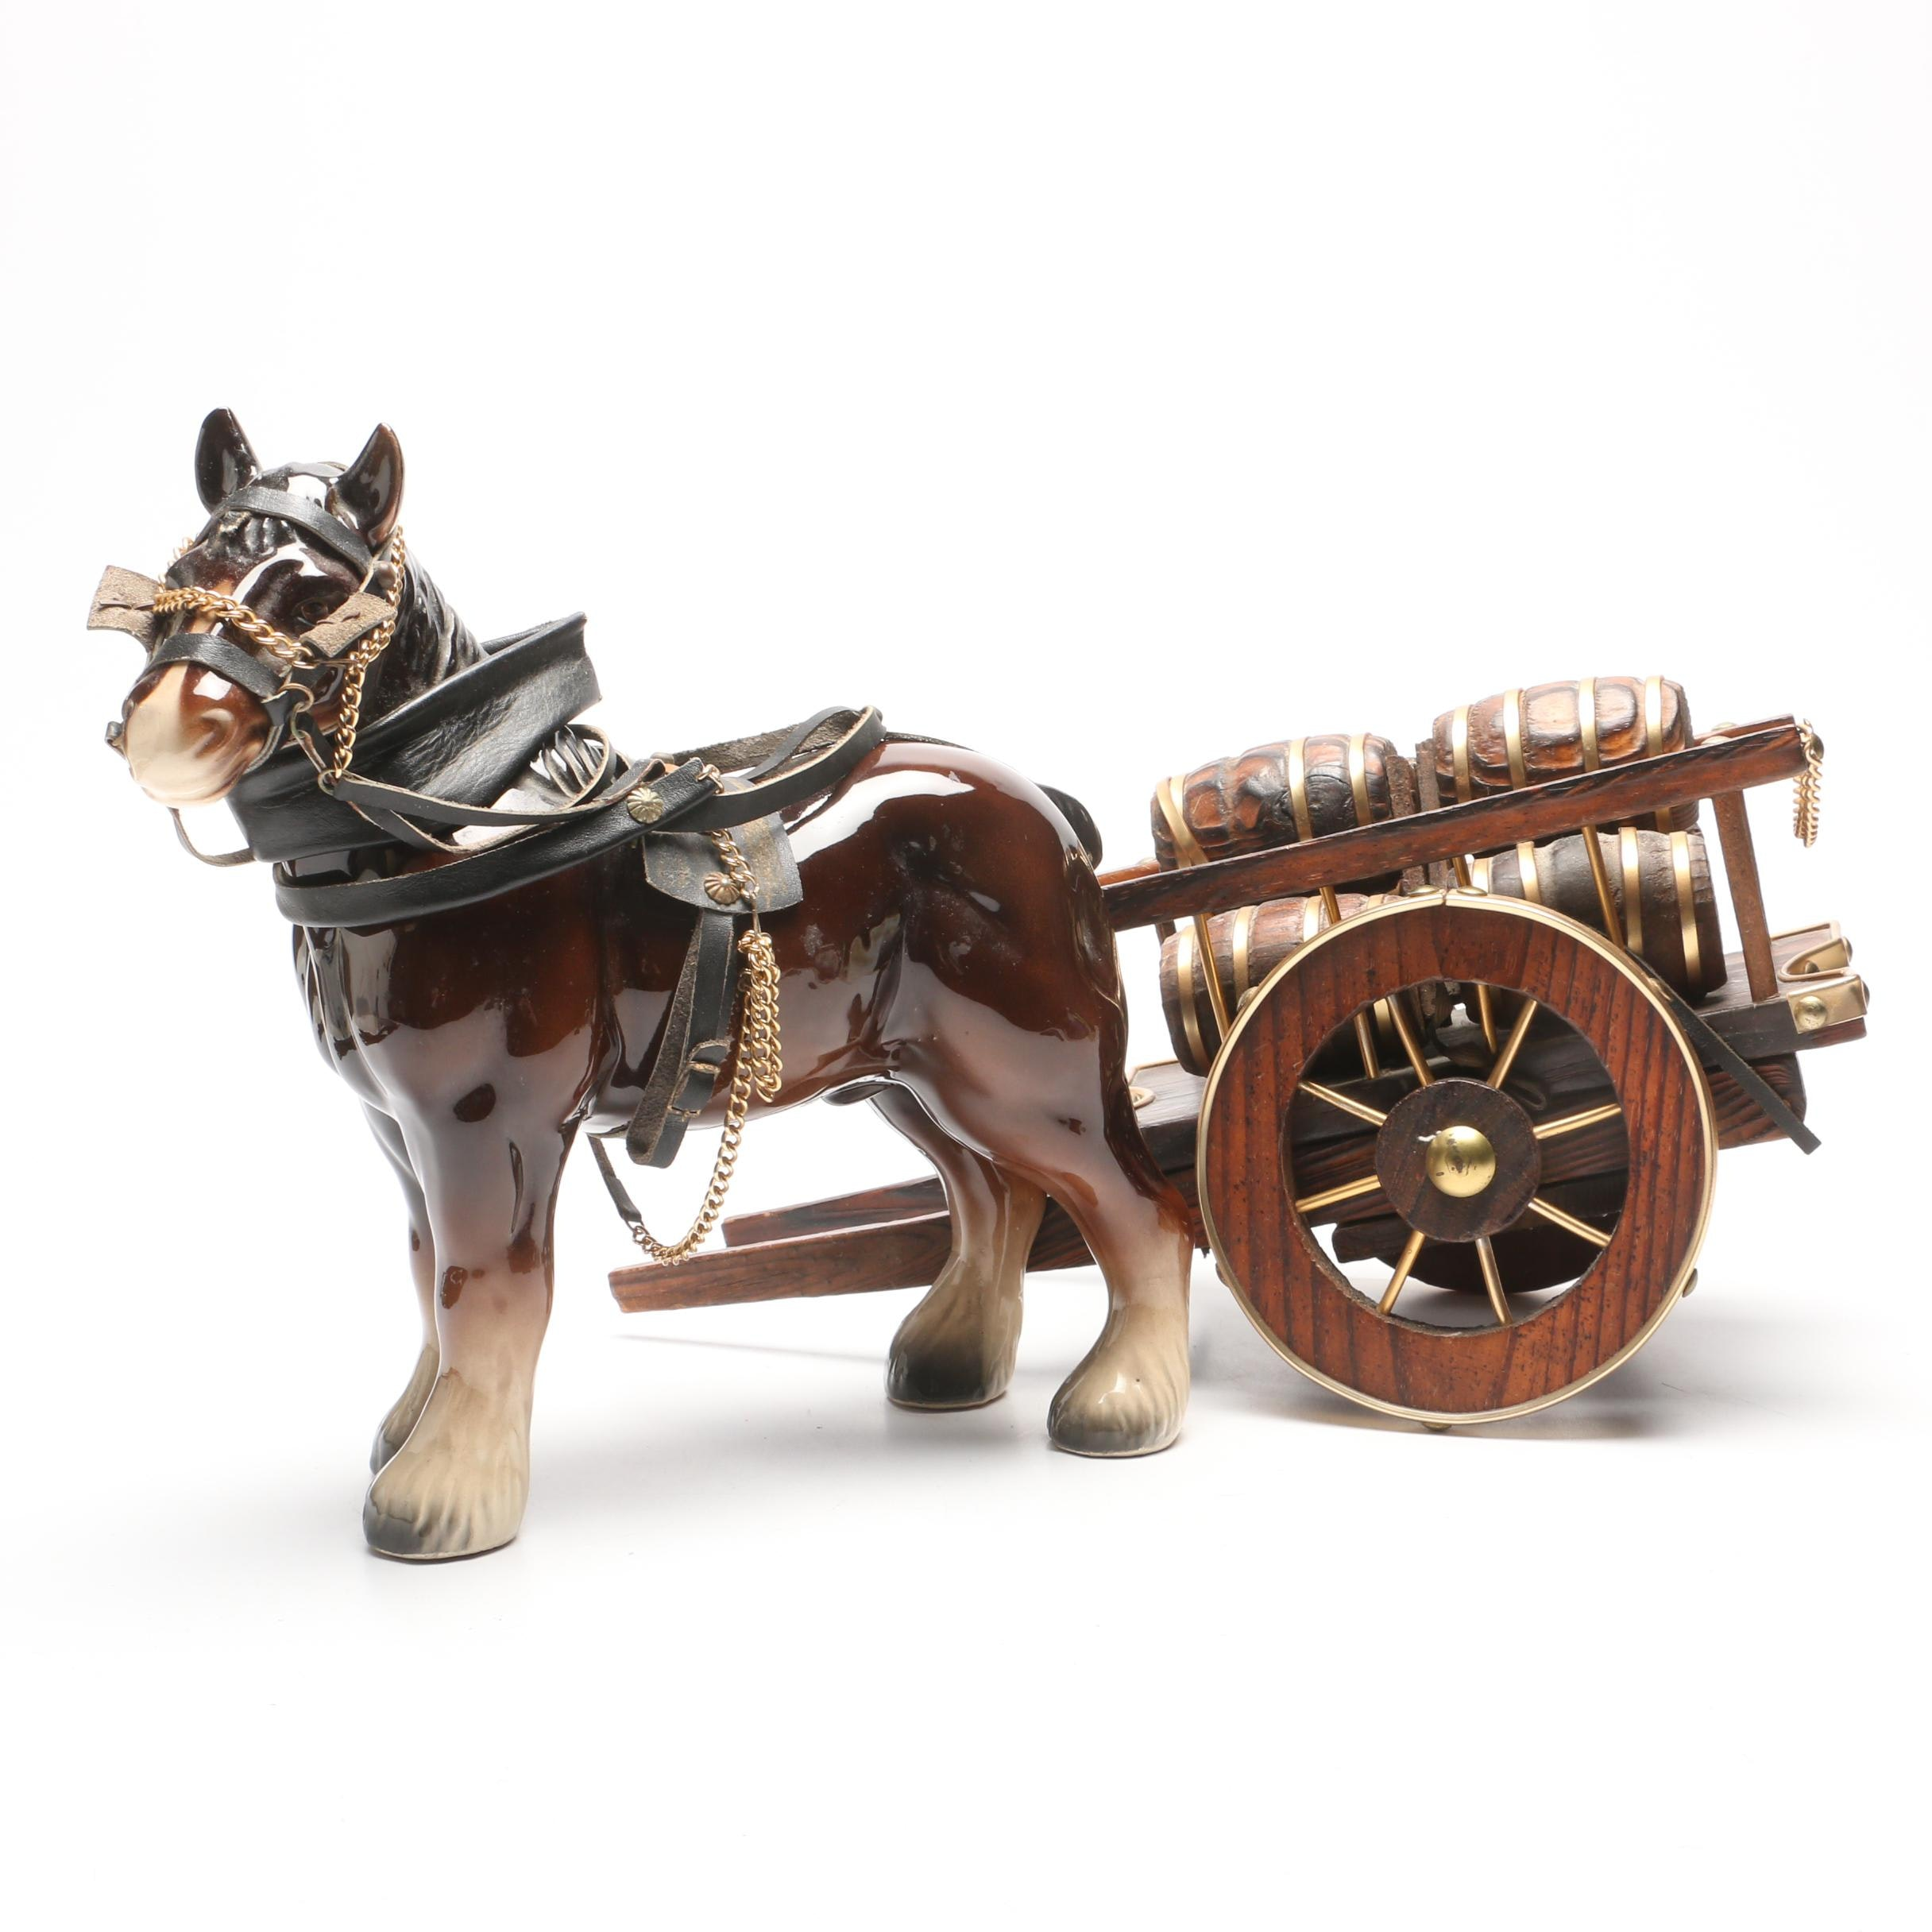 Shire  Horse Porcelain Figurine Pulling a Cart